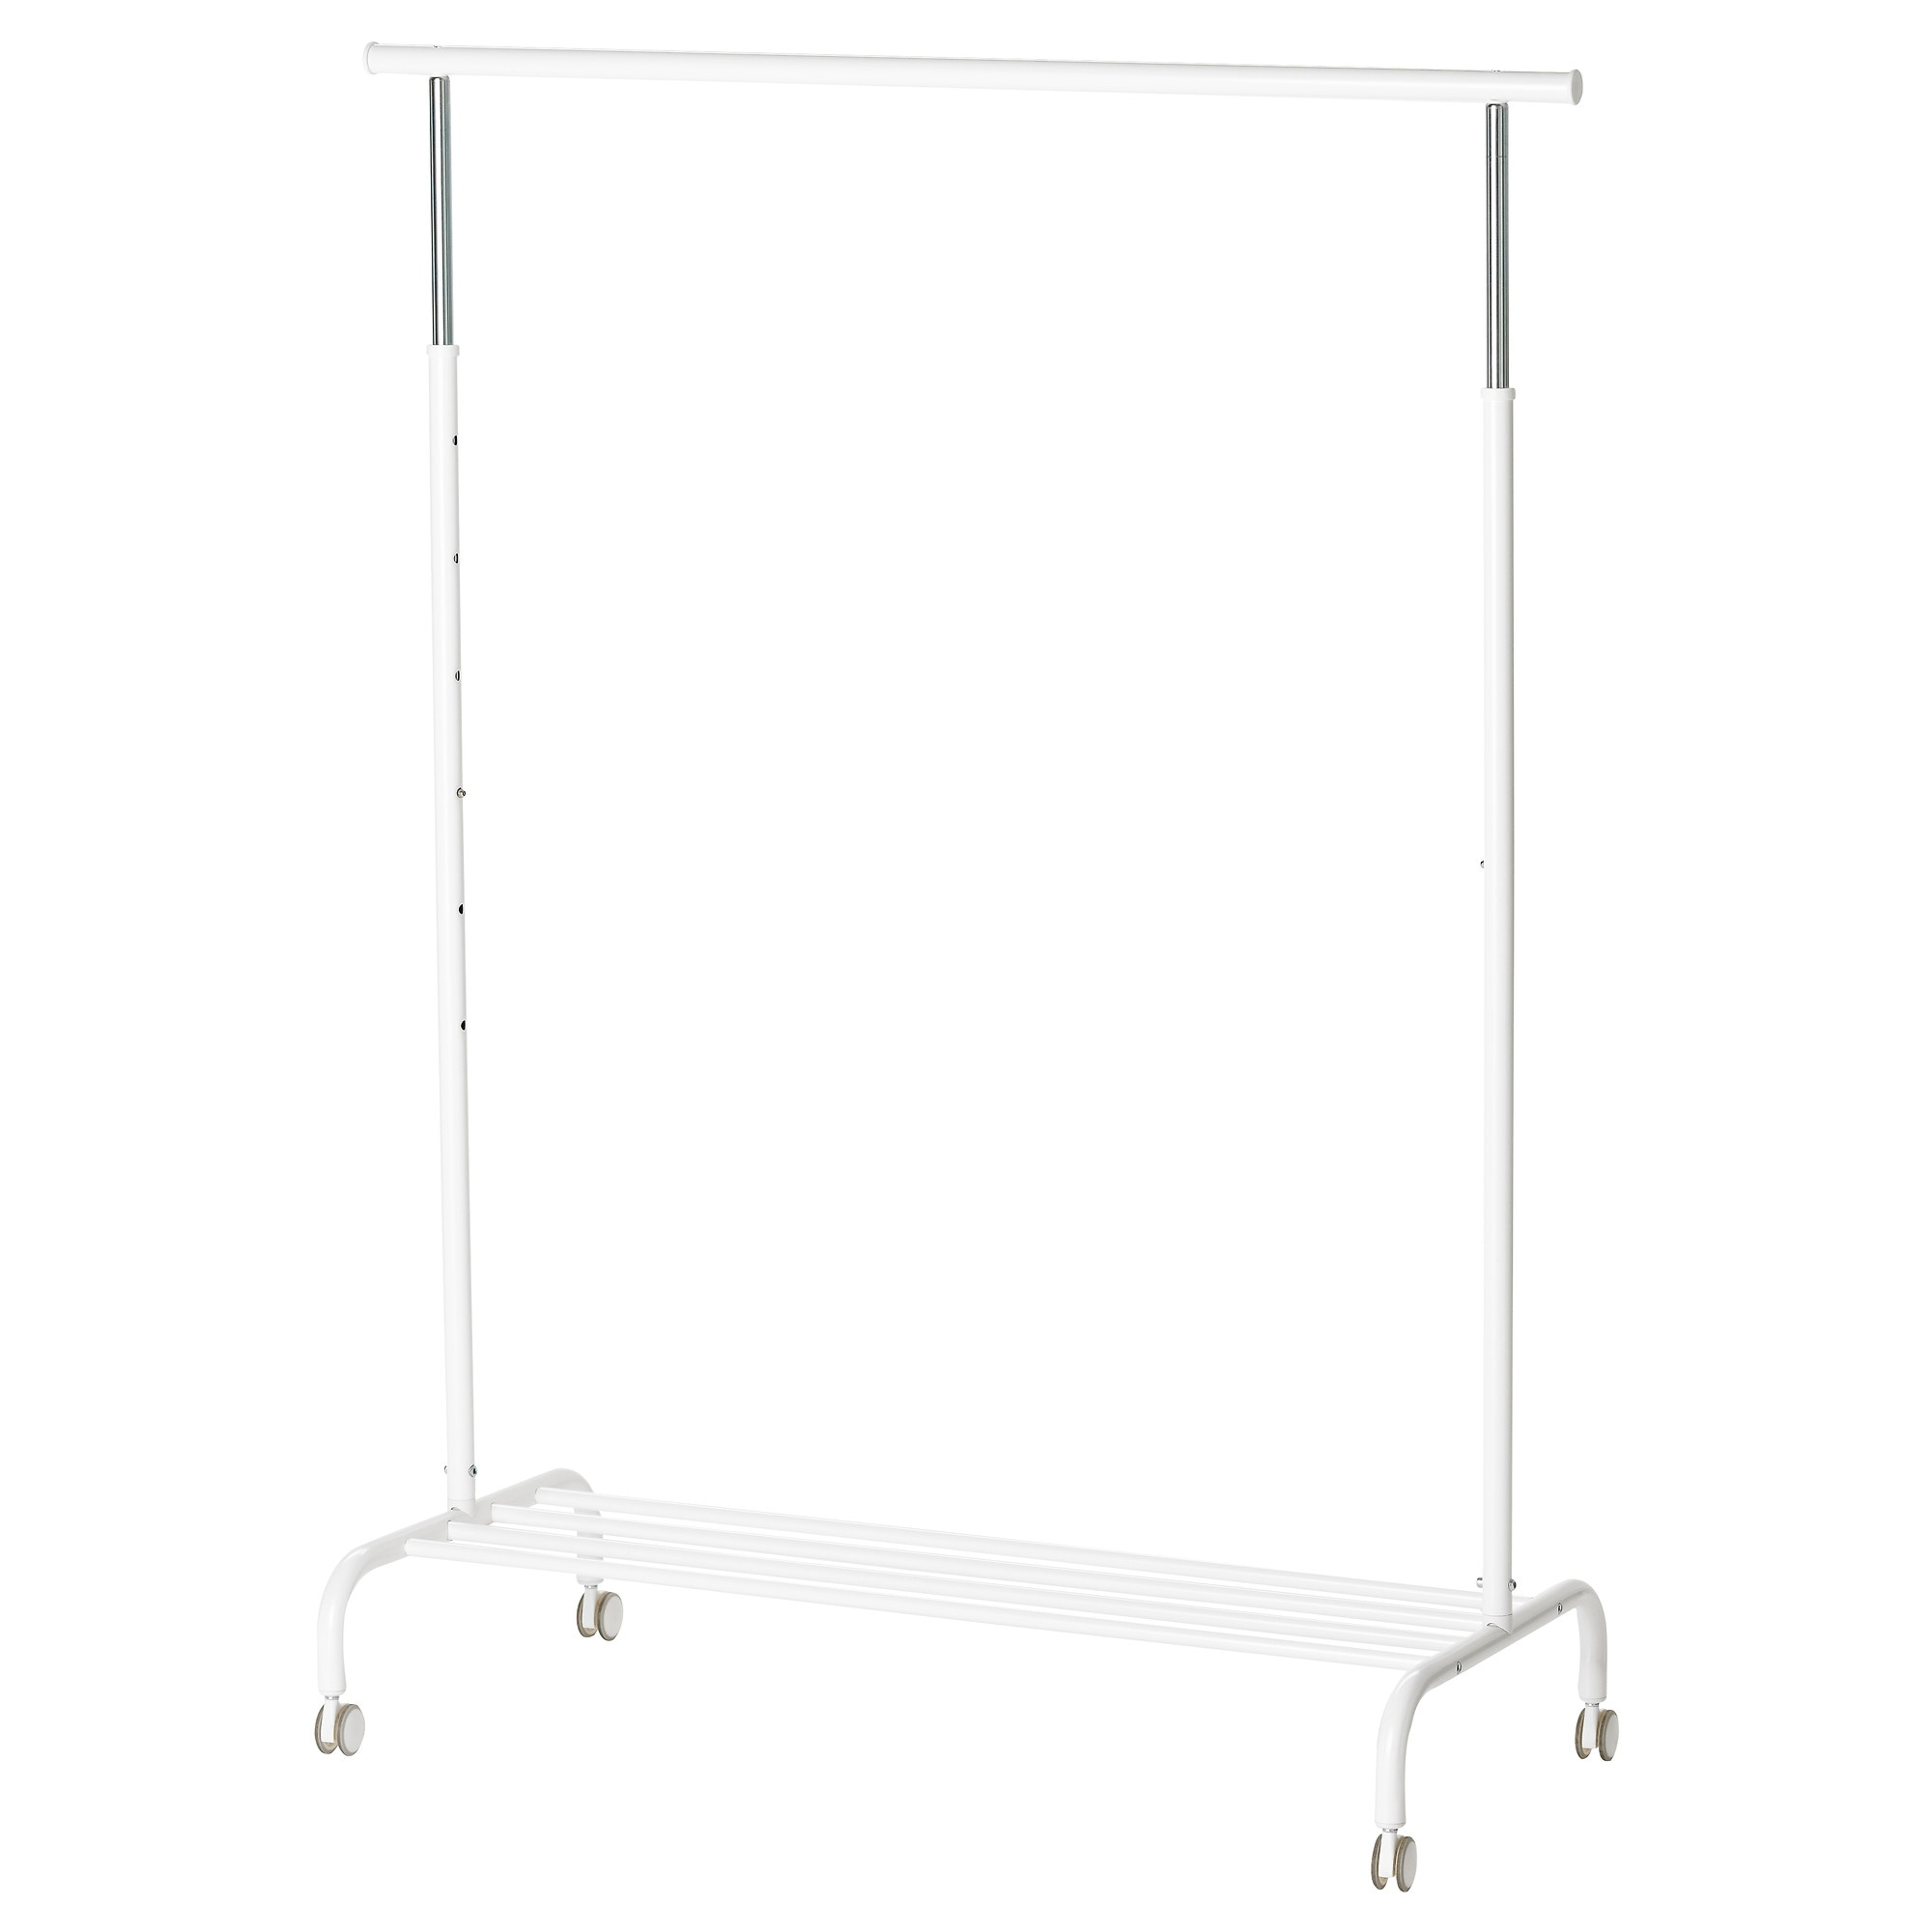 RIGGA clothes rack, white Width: 43 3/4